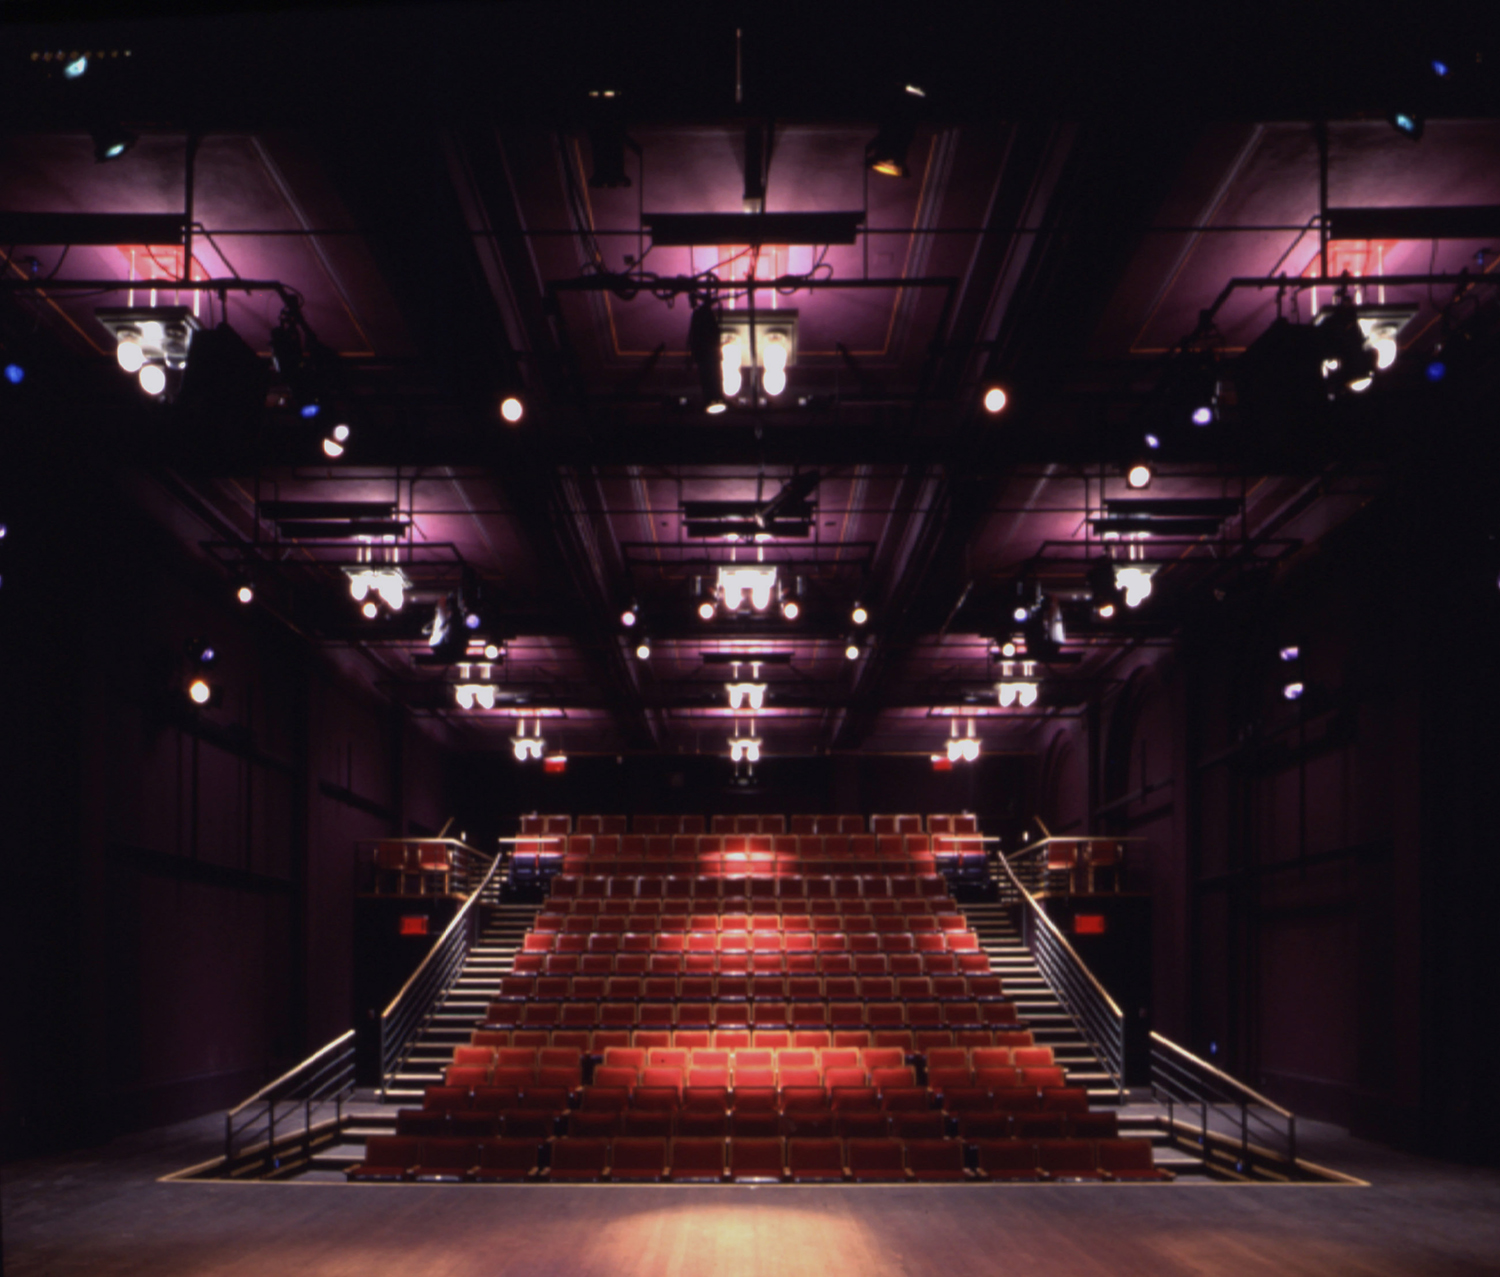 View of theater seating from stage